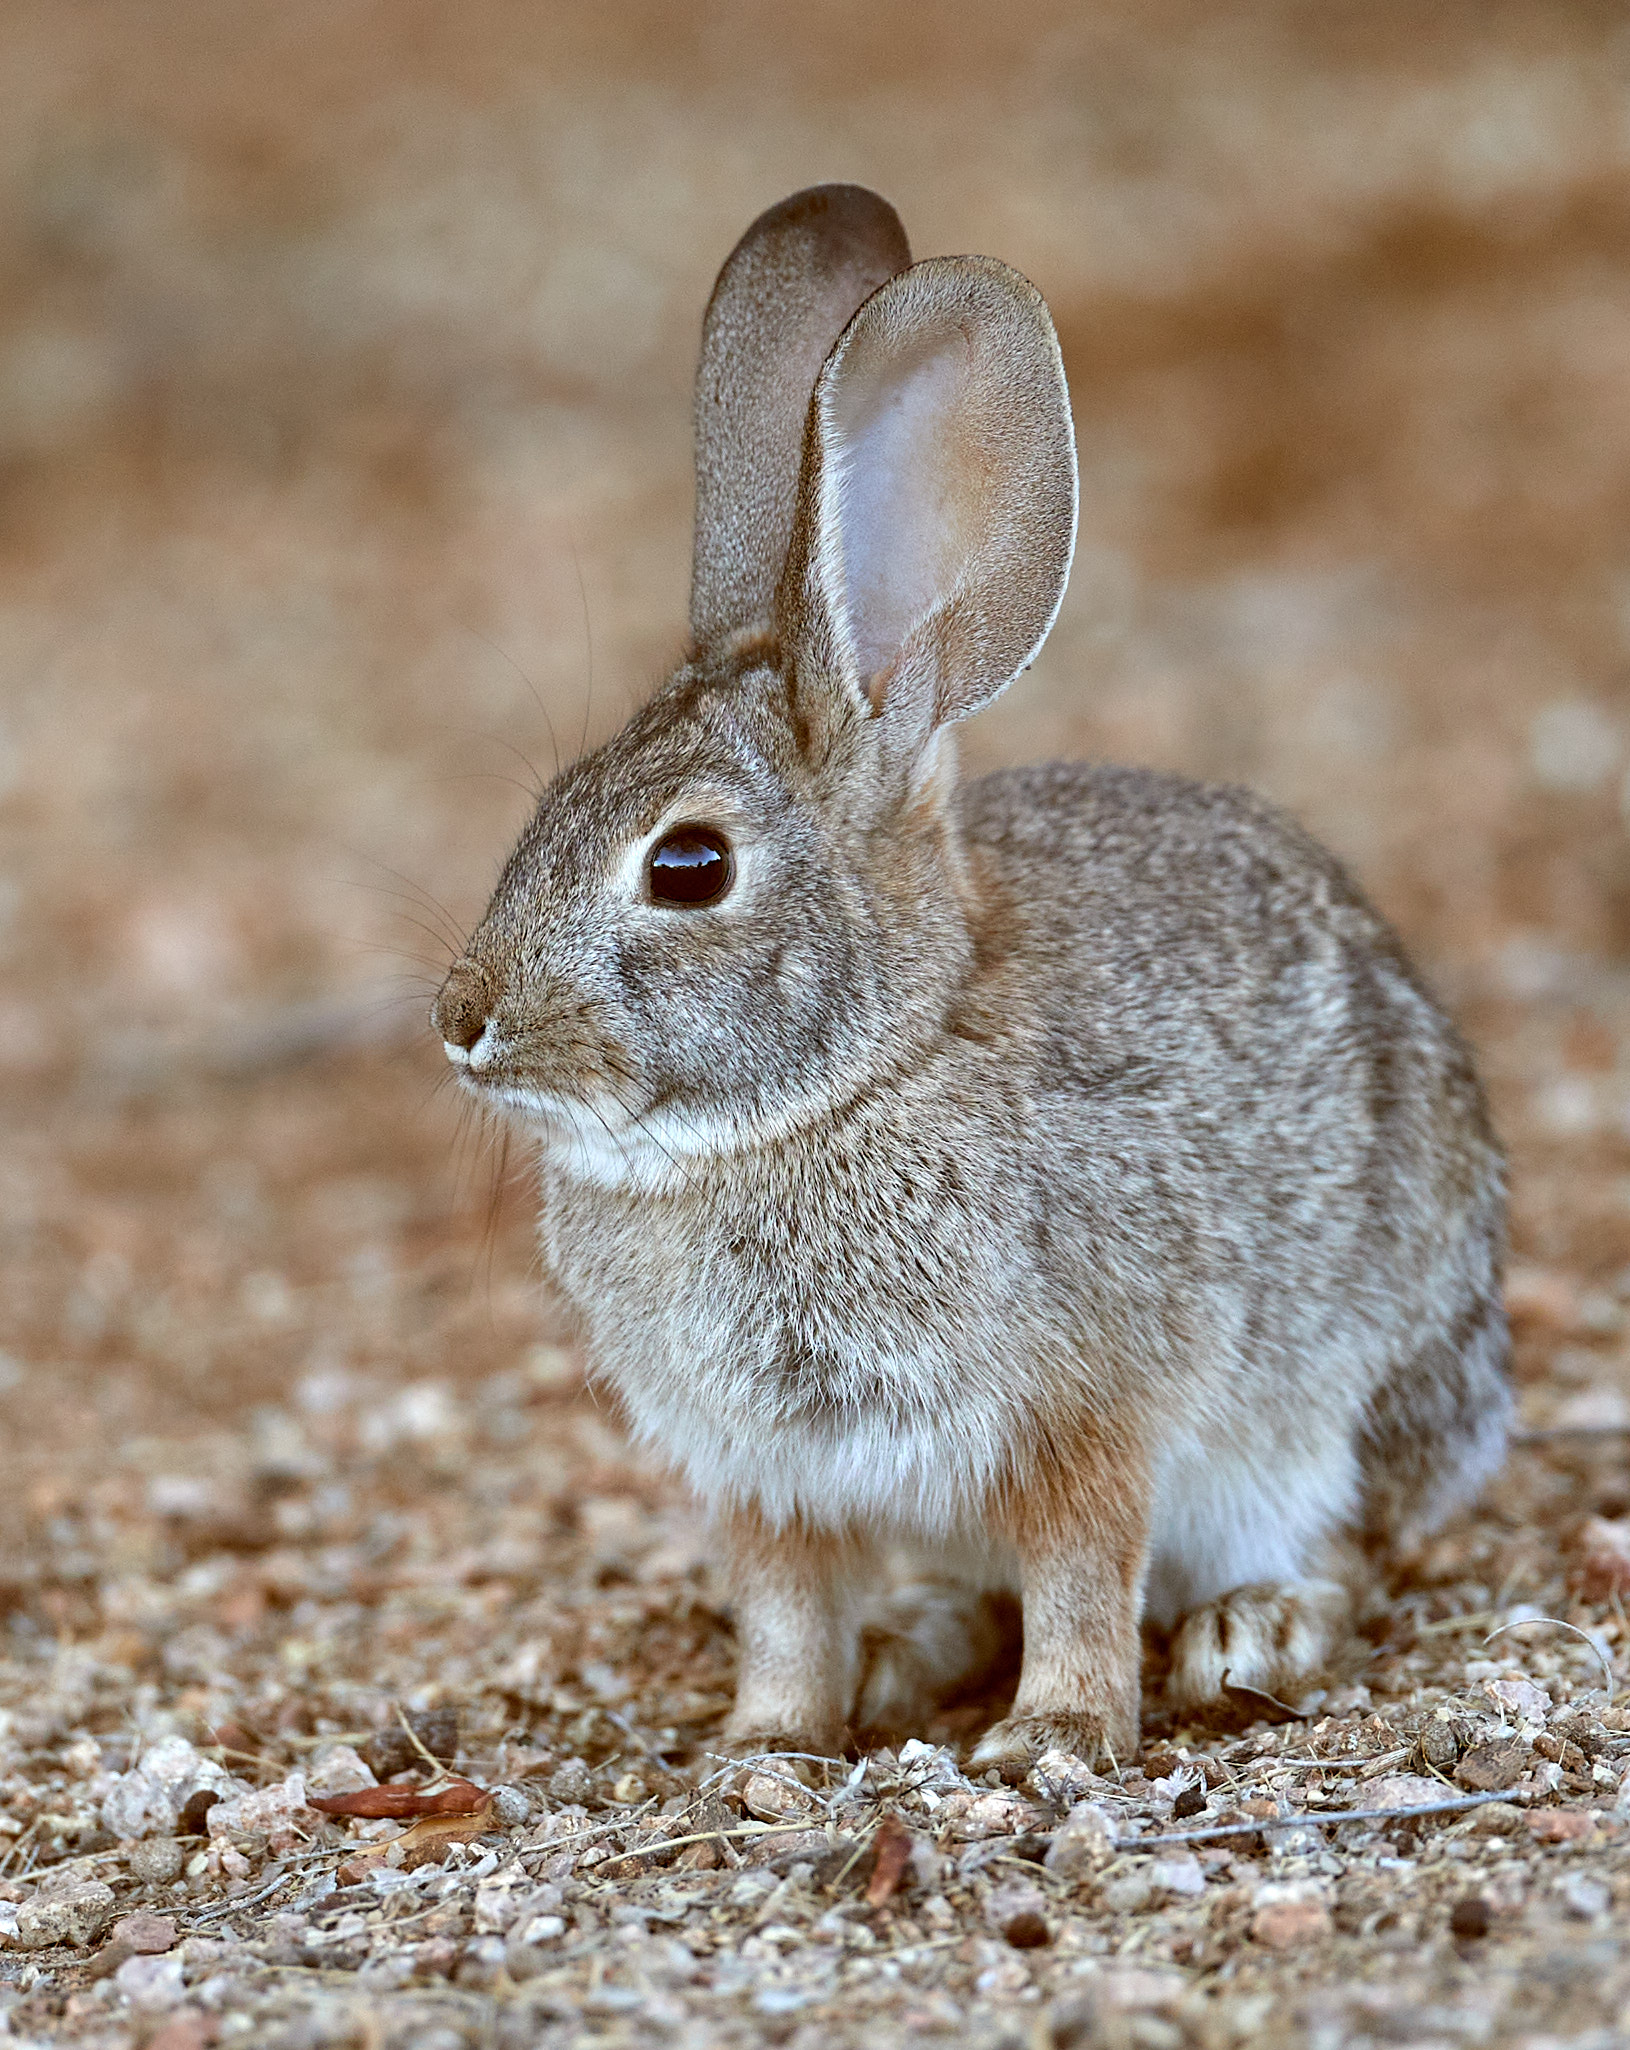 138781 download wallpaper Animals, Rabbit, Animal, Grey, Wild, Nice, Sweetheart screensavers and pictures for free